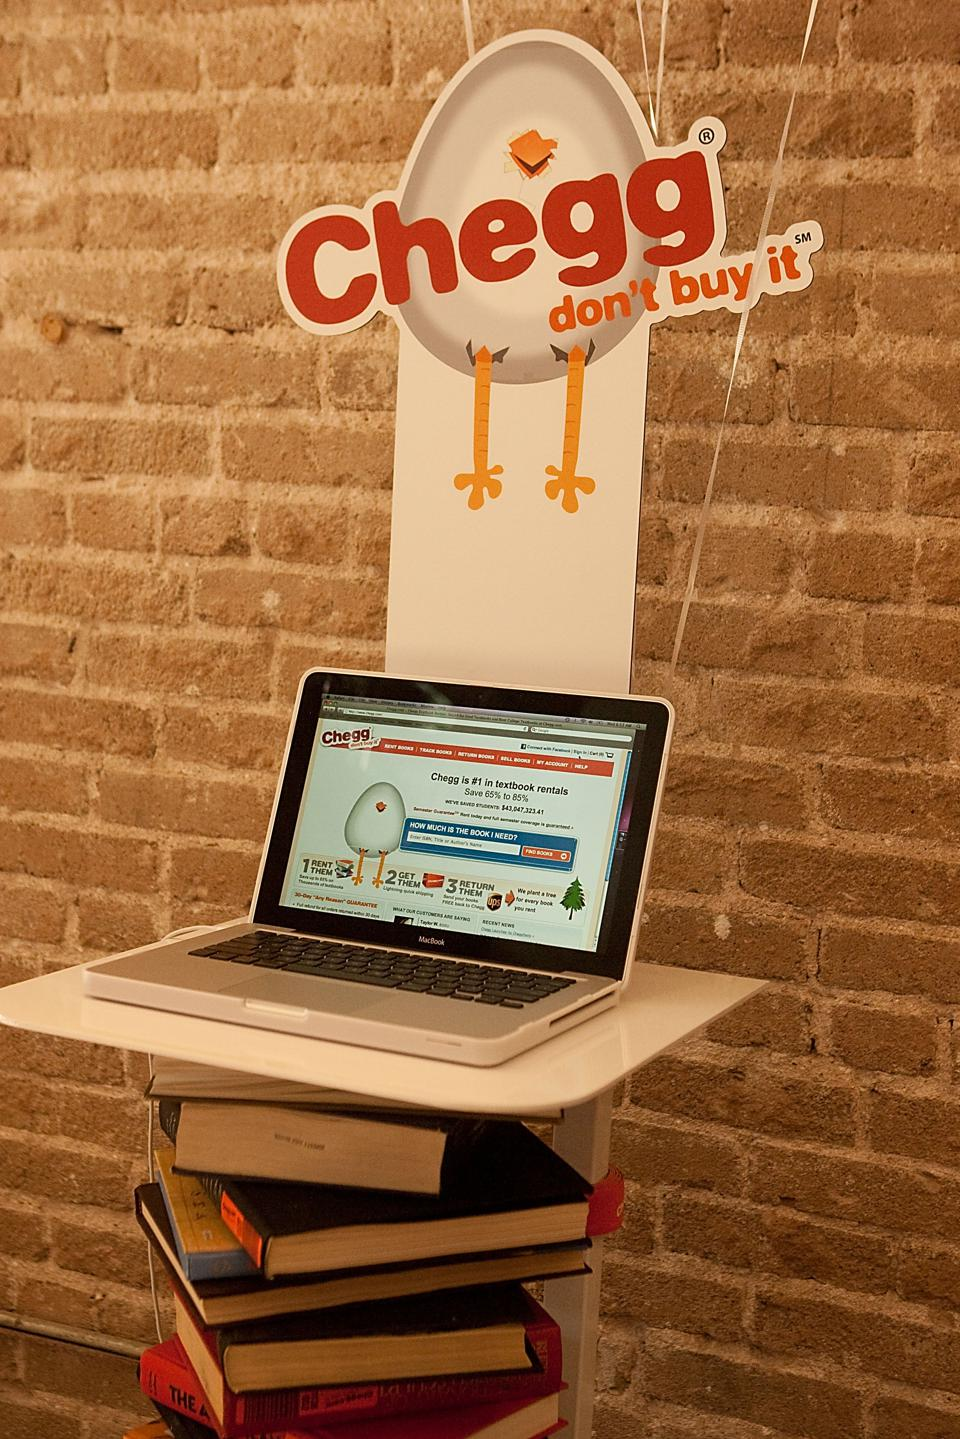 Chegg.com Campus Takeover's ″Late Night with Chegg″ - Austin